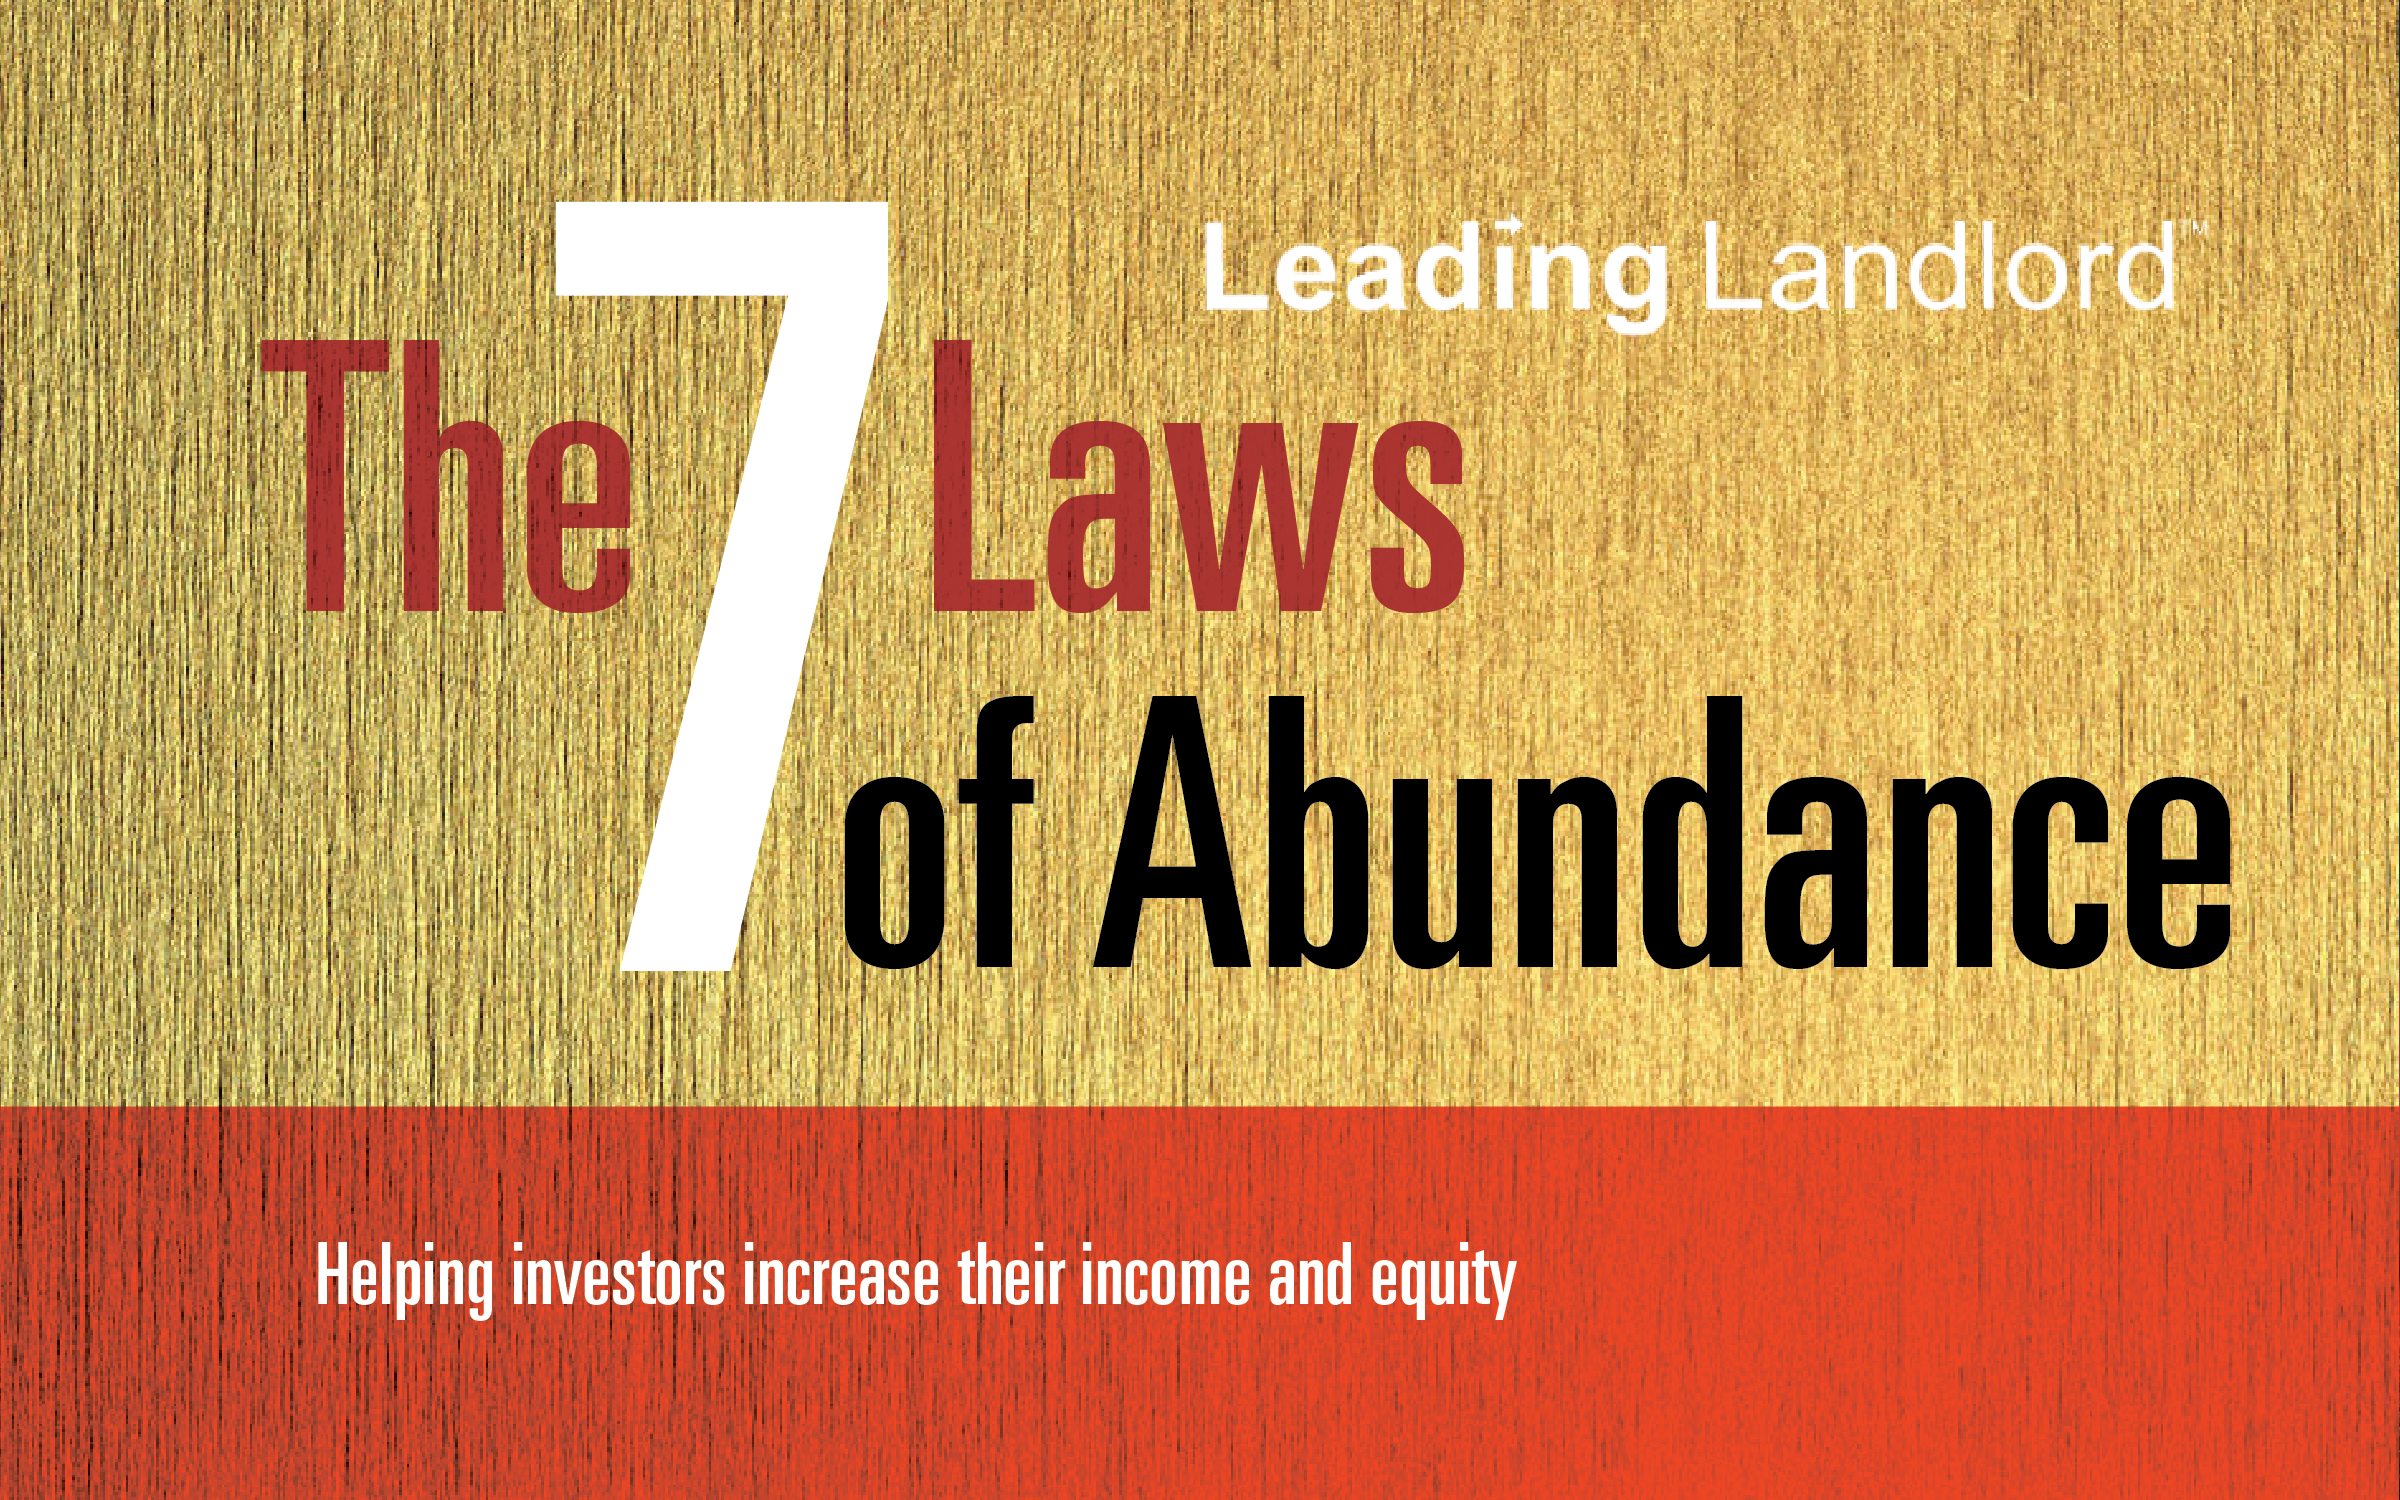 The 7 Laws of Abundance